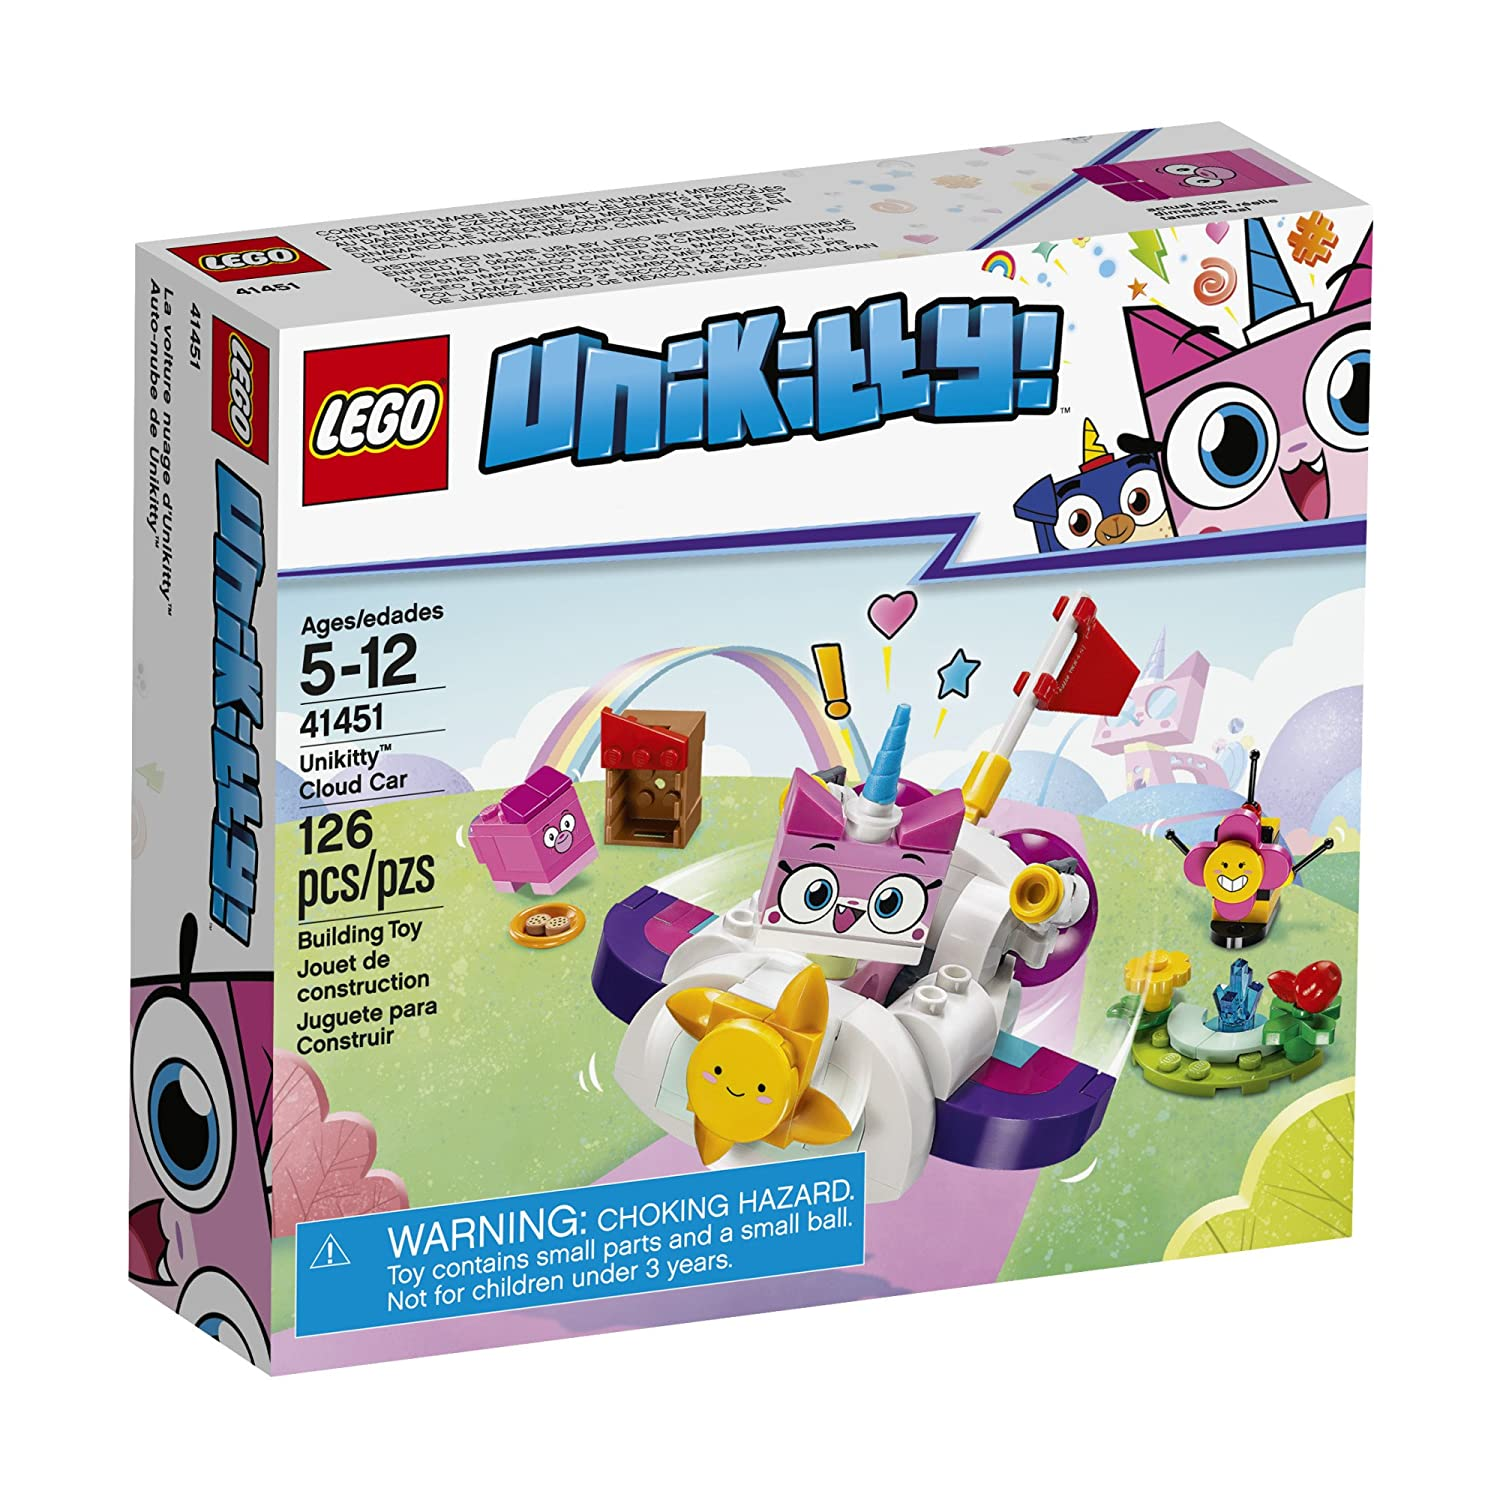 Top 7 Best LEGO Unikitty Sets Reviews in 2020 3